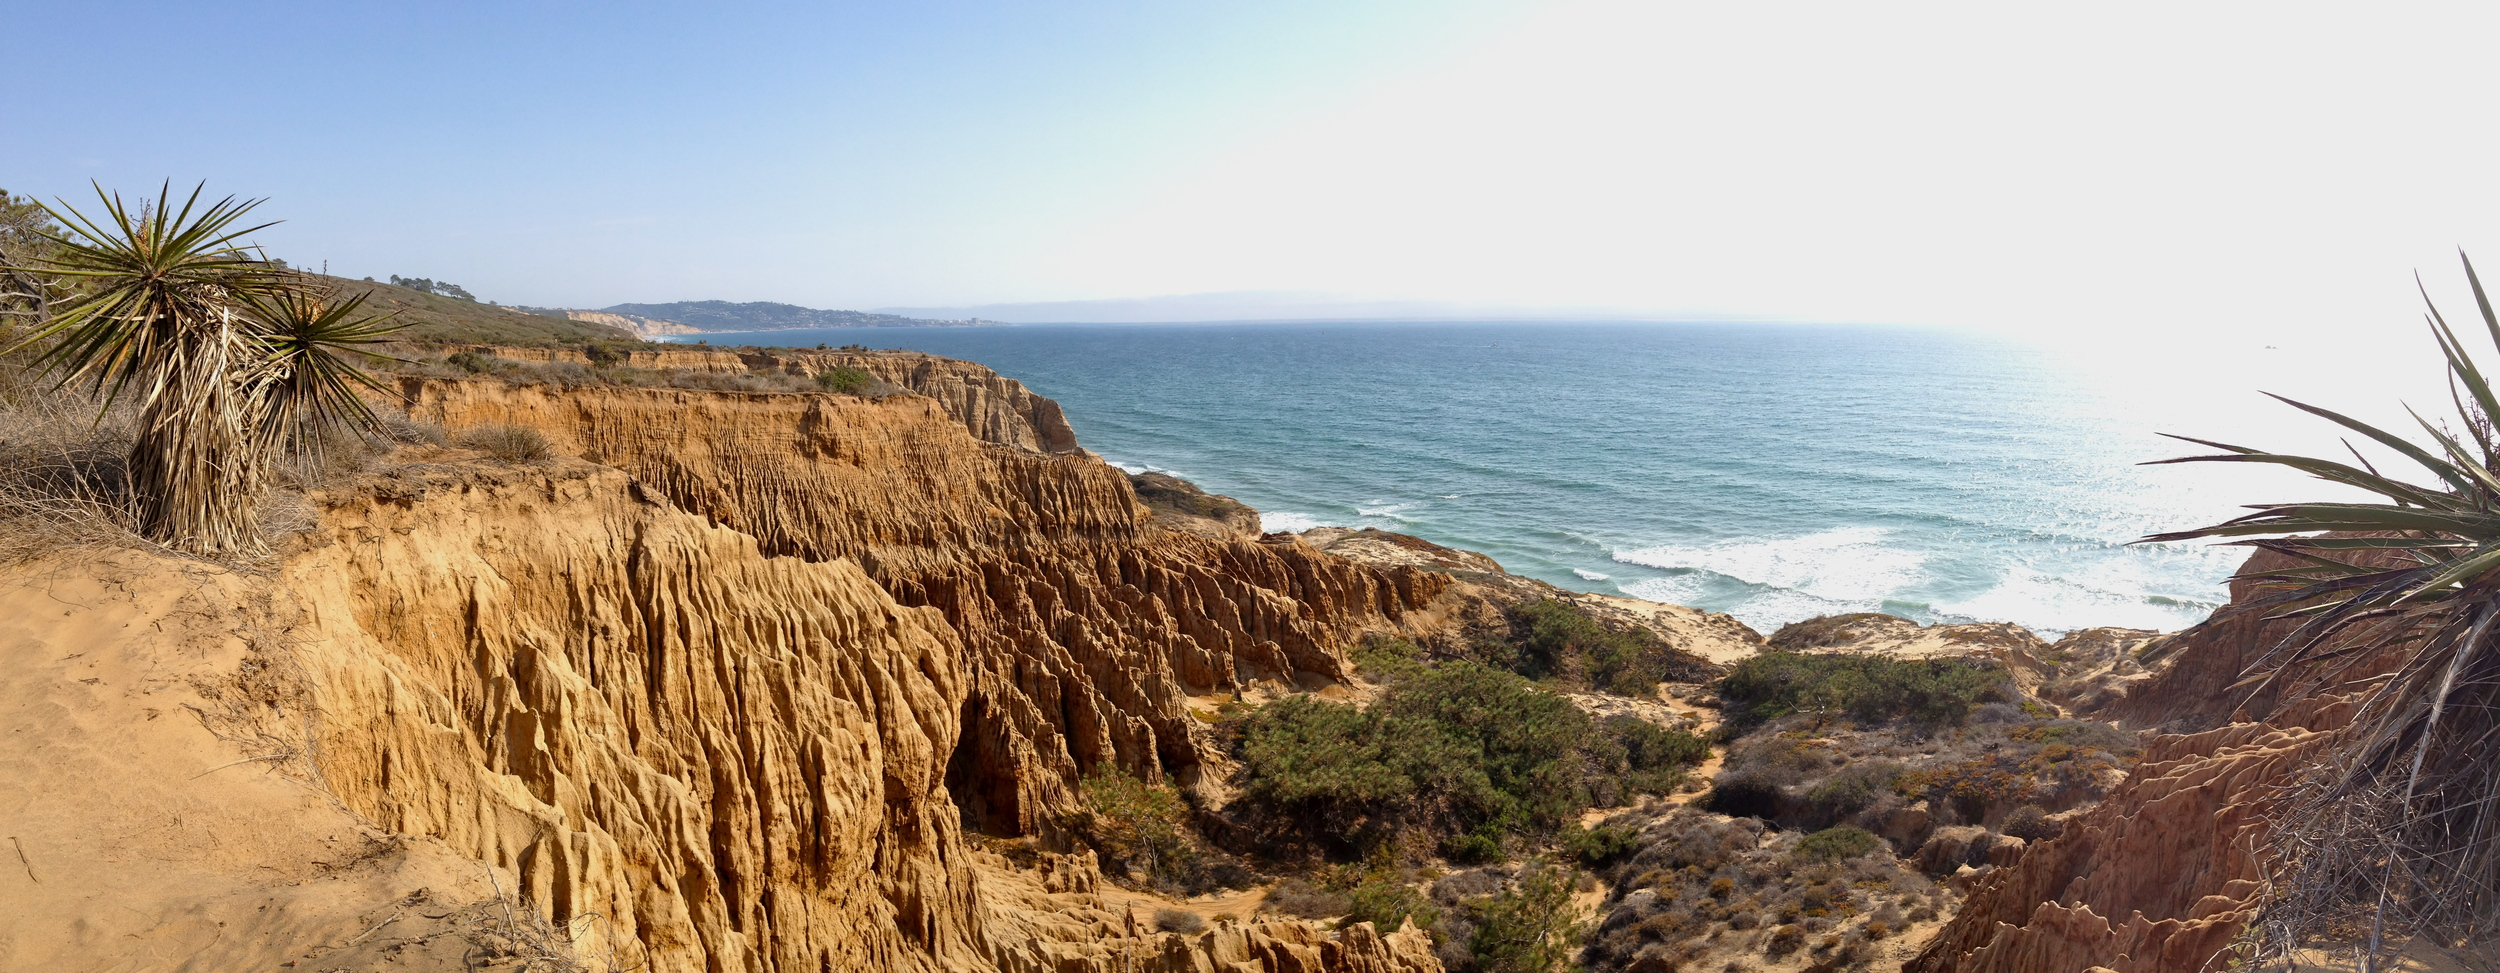 View of the Pacific Ocean from the cliffs at Torrey Pines